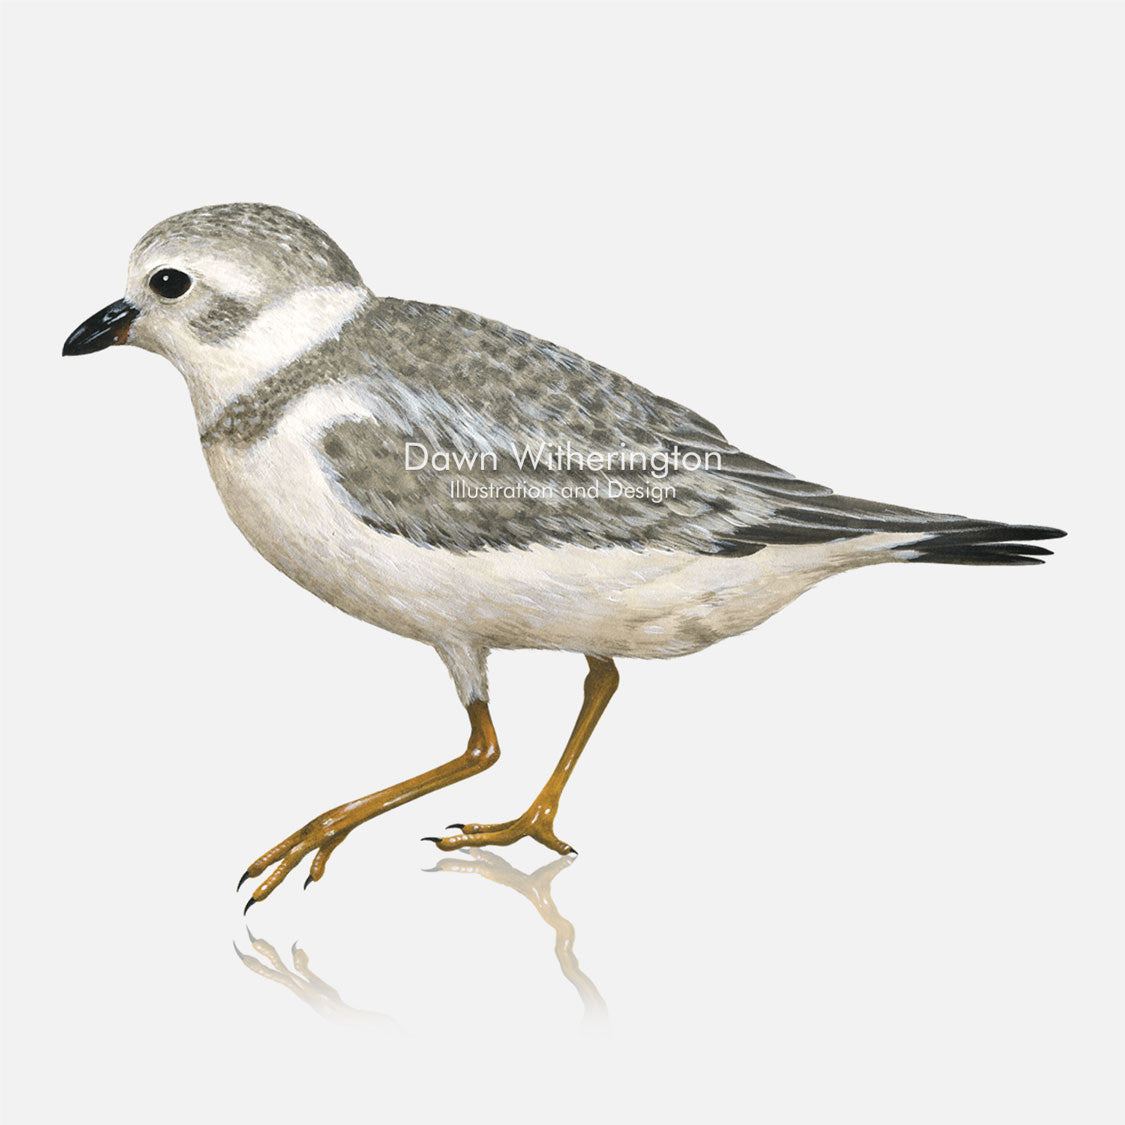 Piping plover in winter